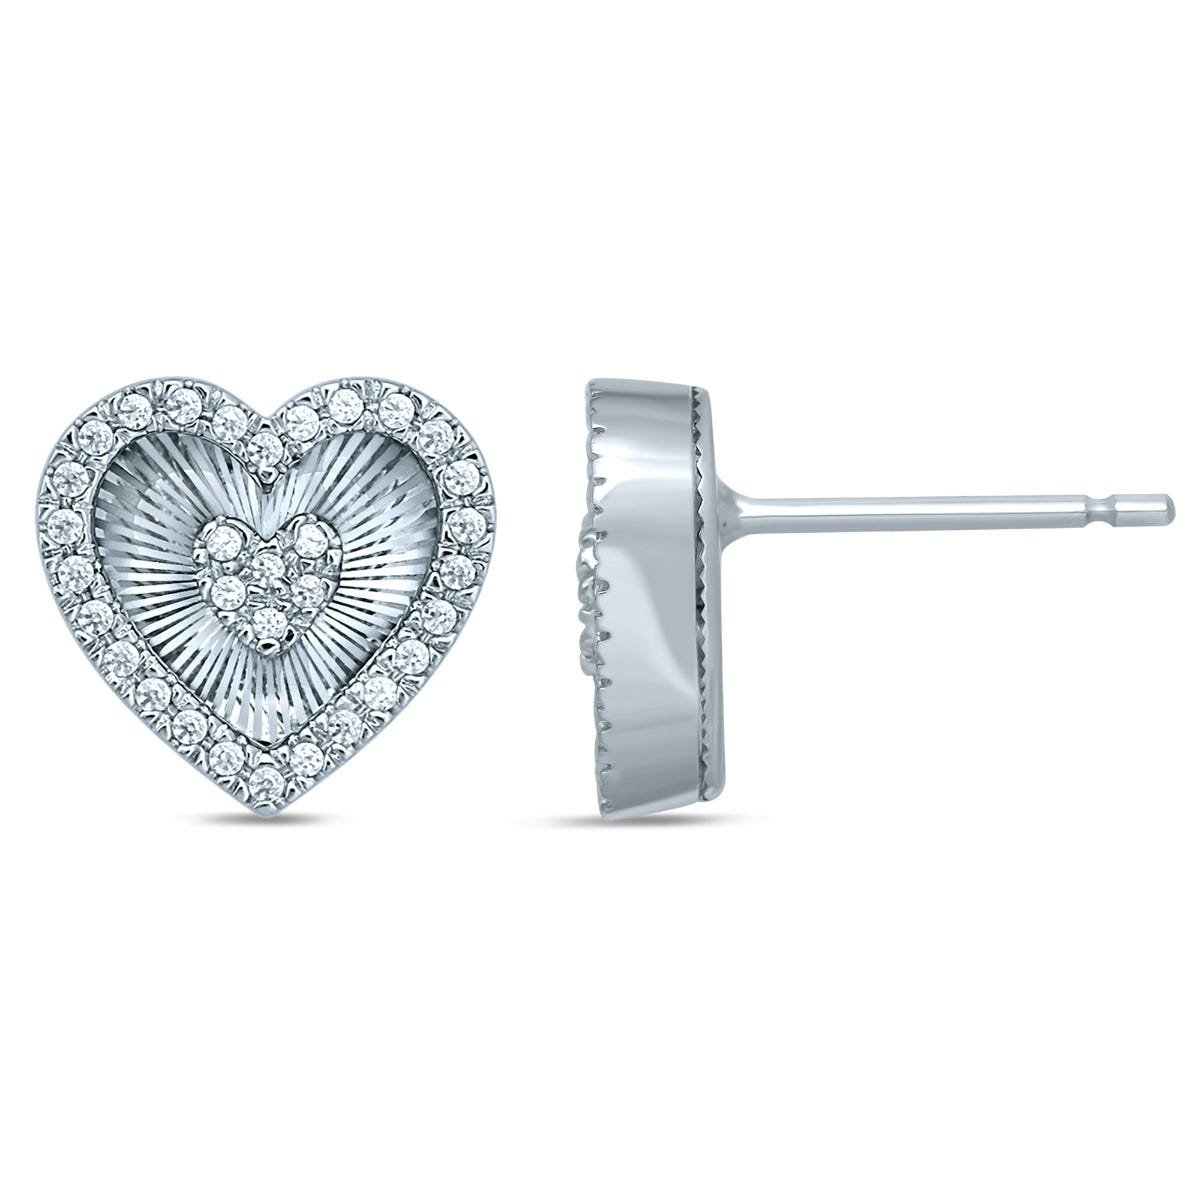 Diamond 1/6ctw. Double Heart Fashion Stud Earrings in 10k White Gold